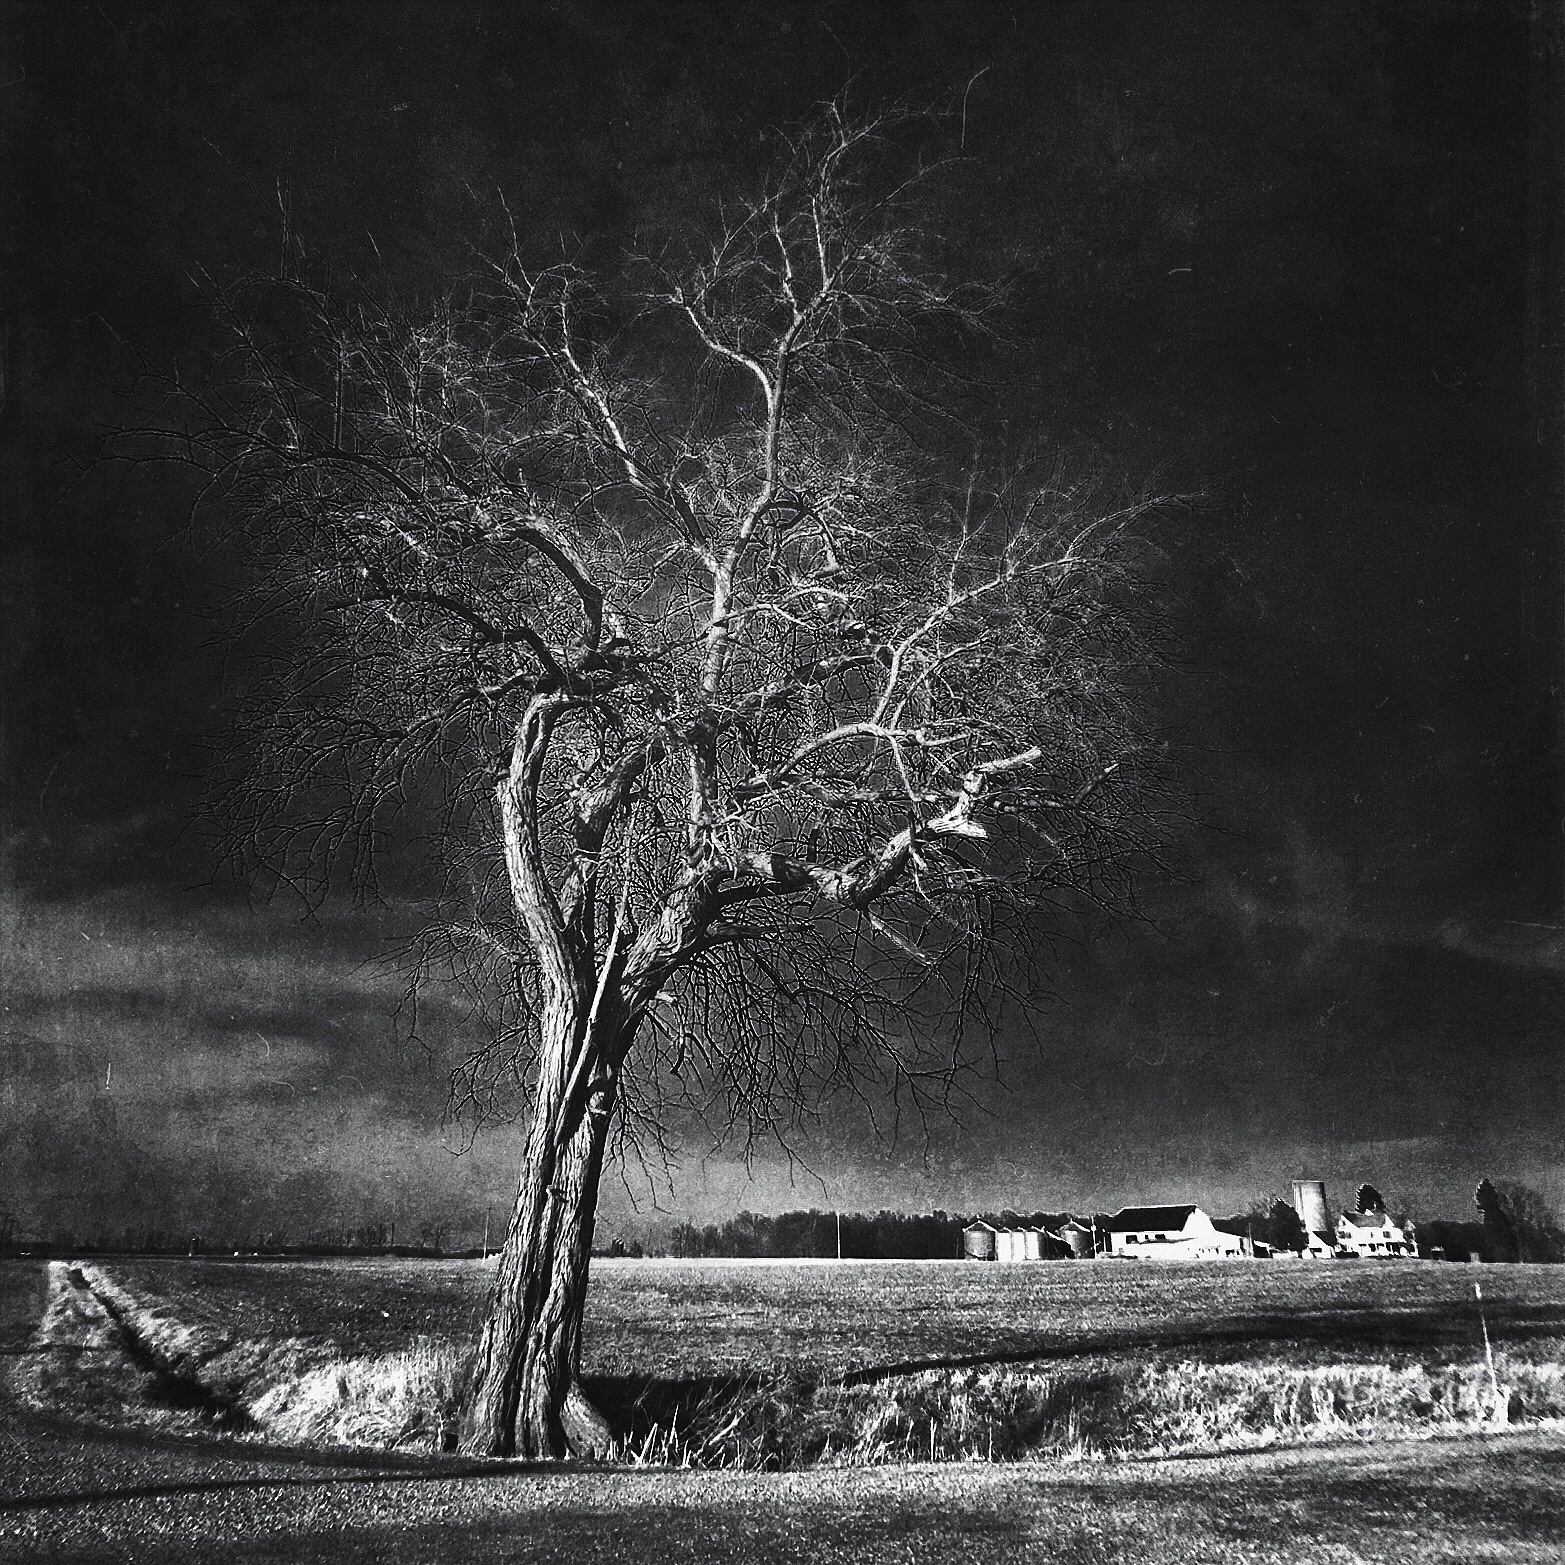 The Twisted Tree by mattdevore